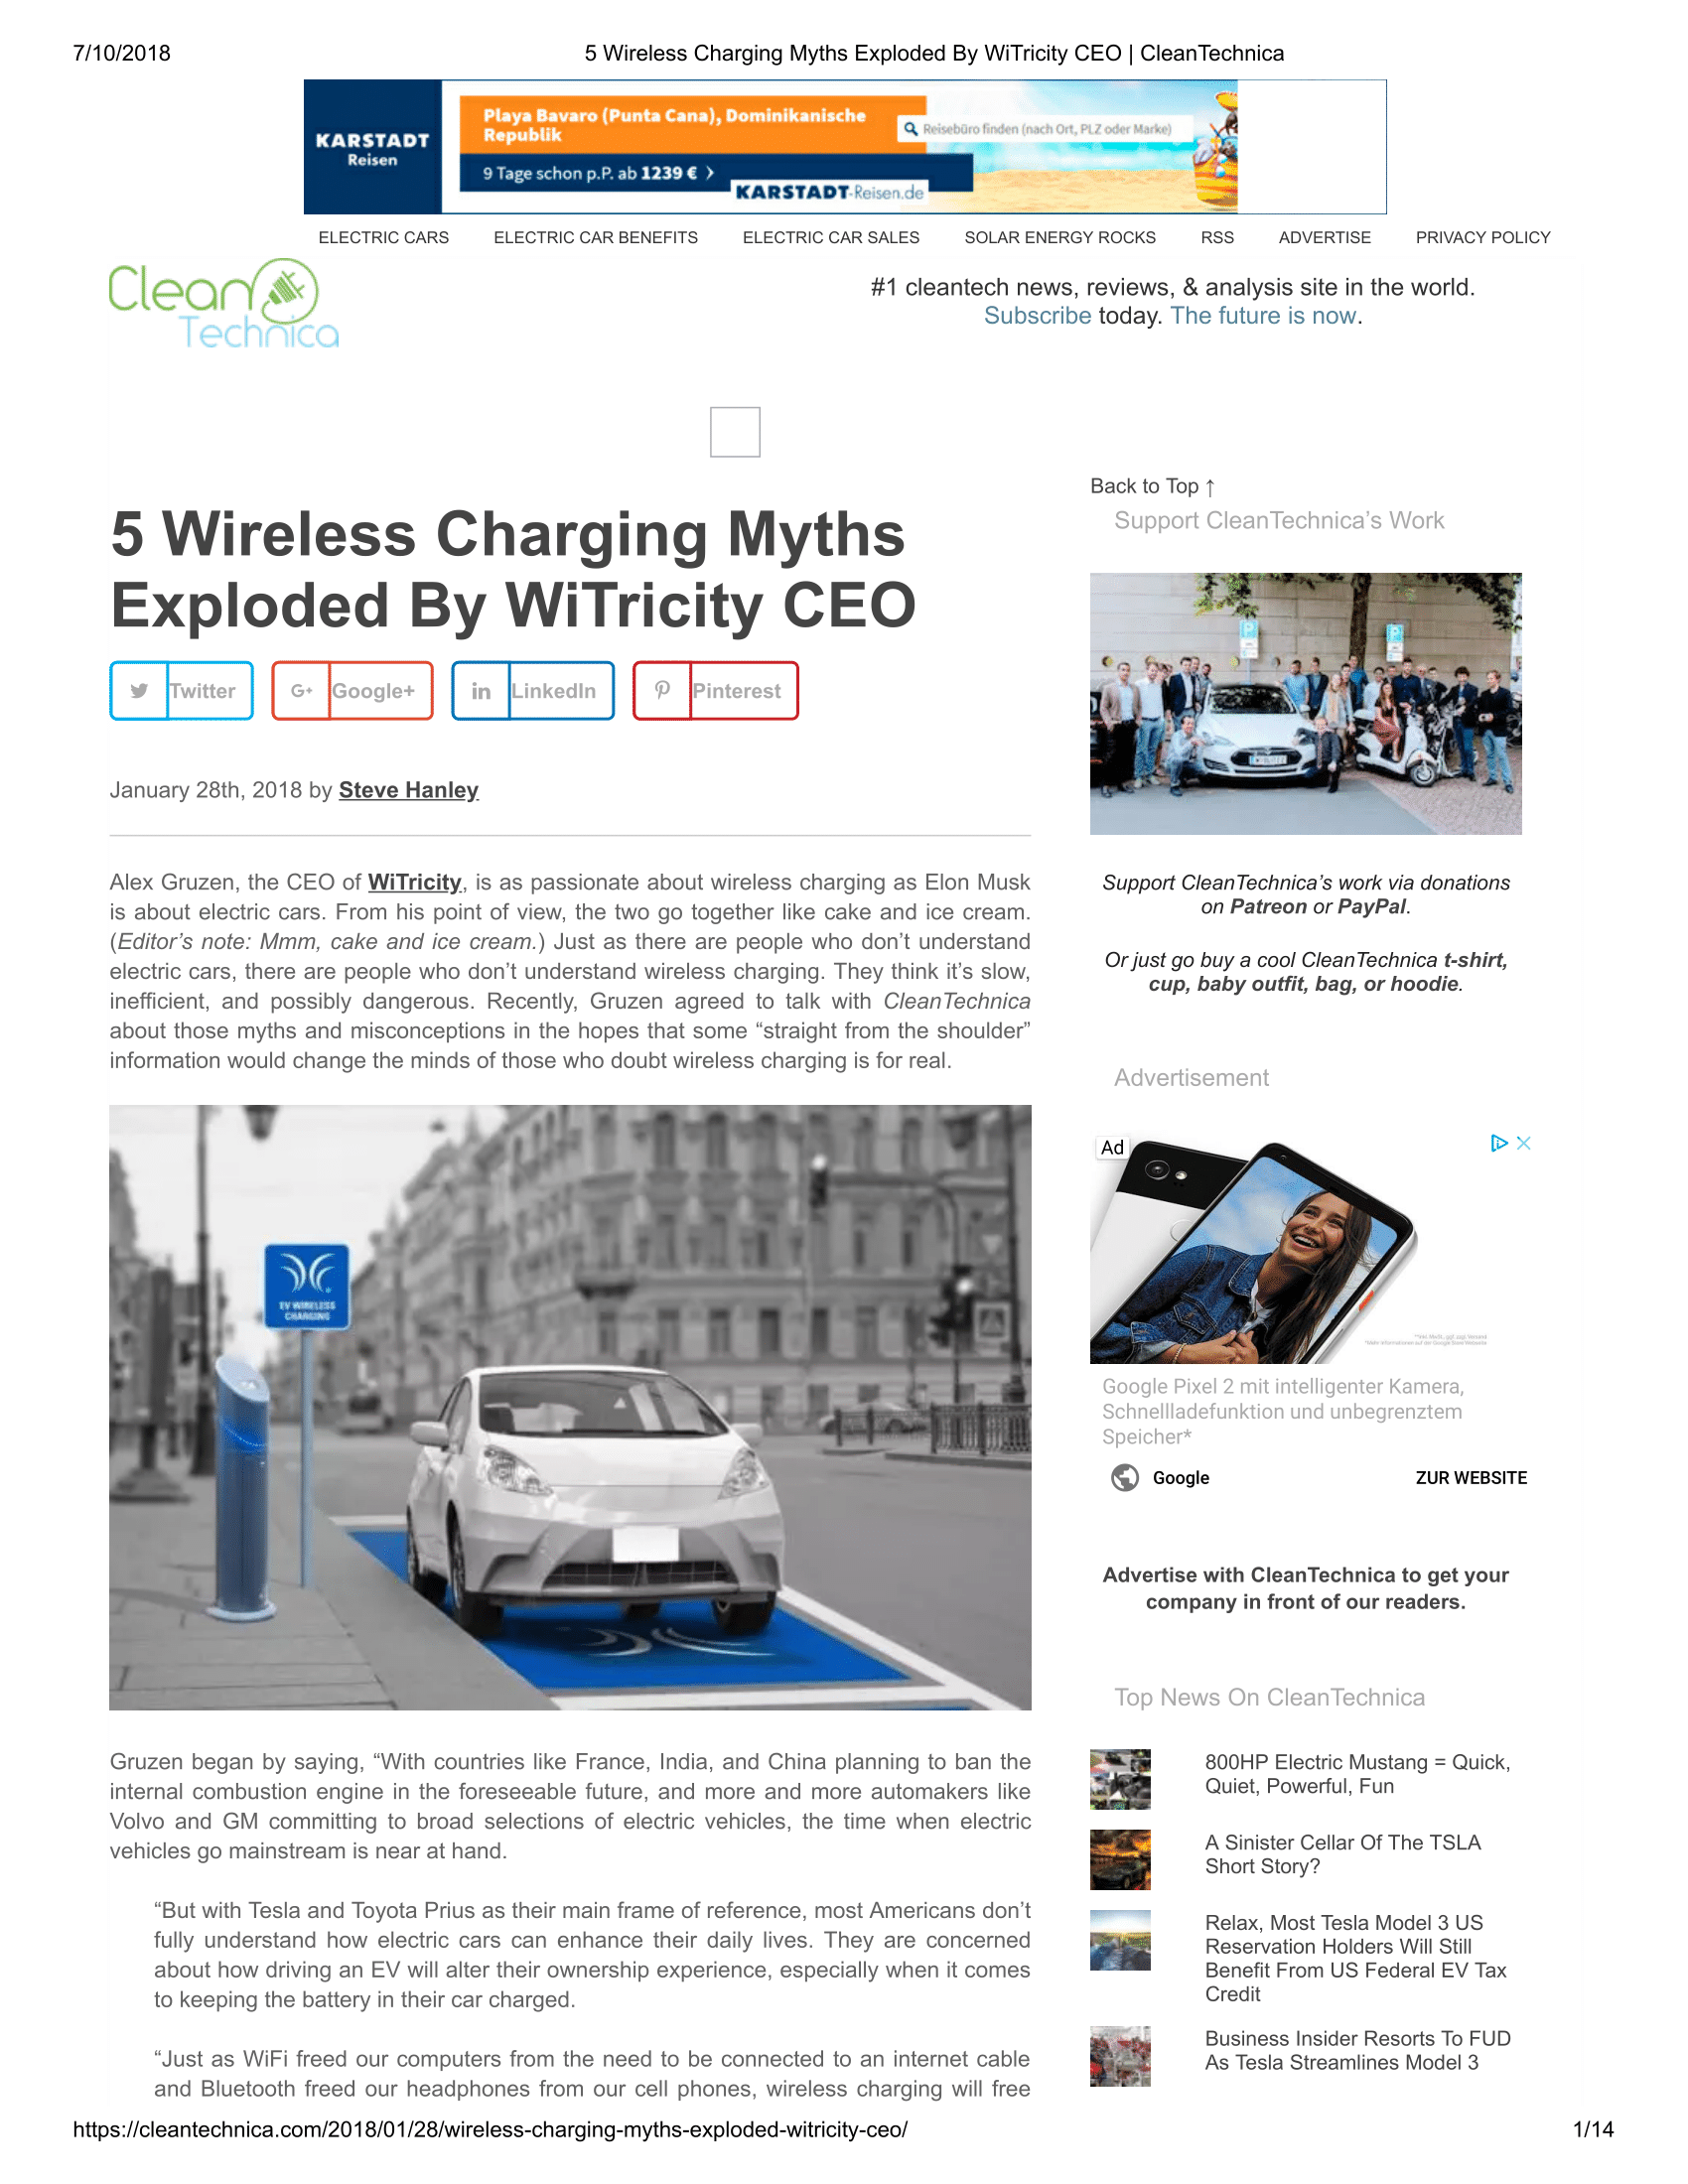 5 Wireless Charging Myths Exploded By WiTricity CEO _ CleanTechnica-1.png